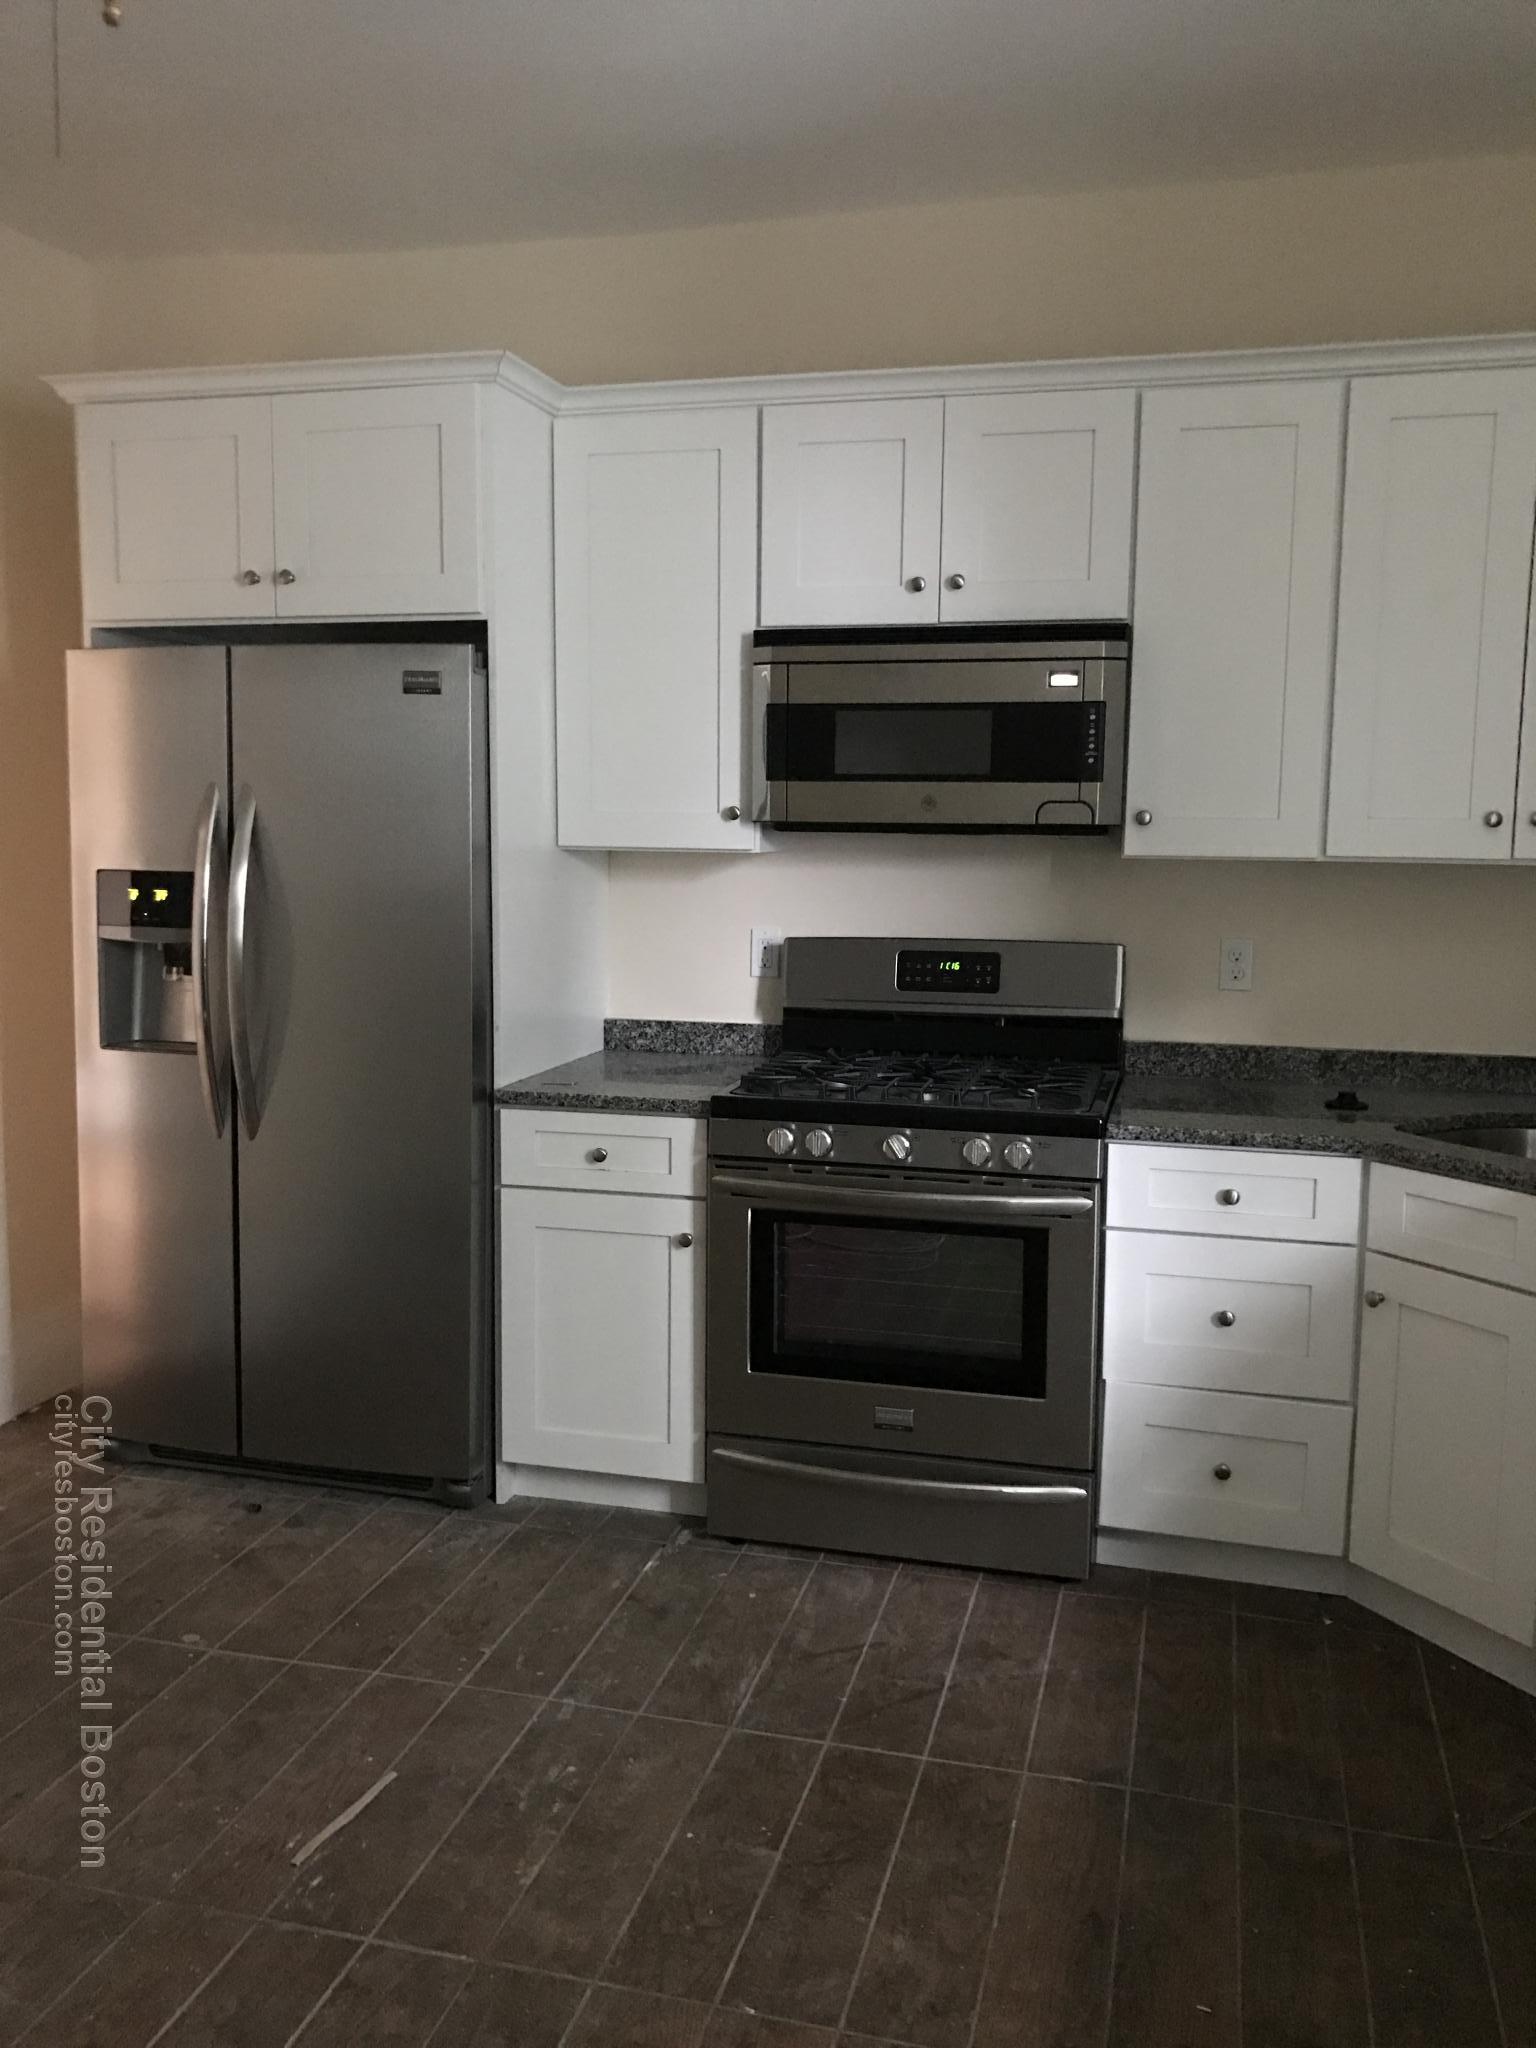 5 Beds, 2 Baths apartment in Boston, South Boston for $5,500